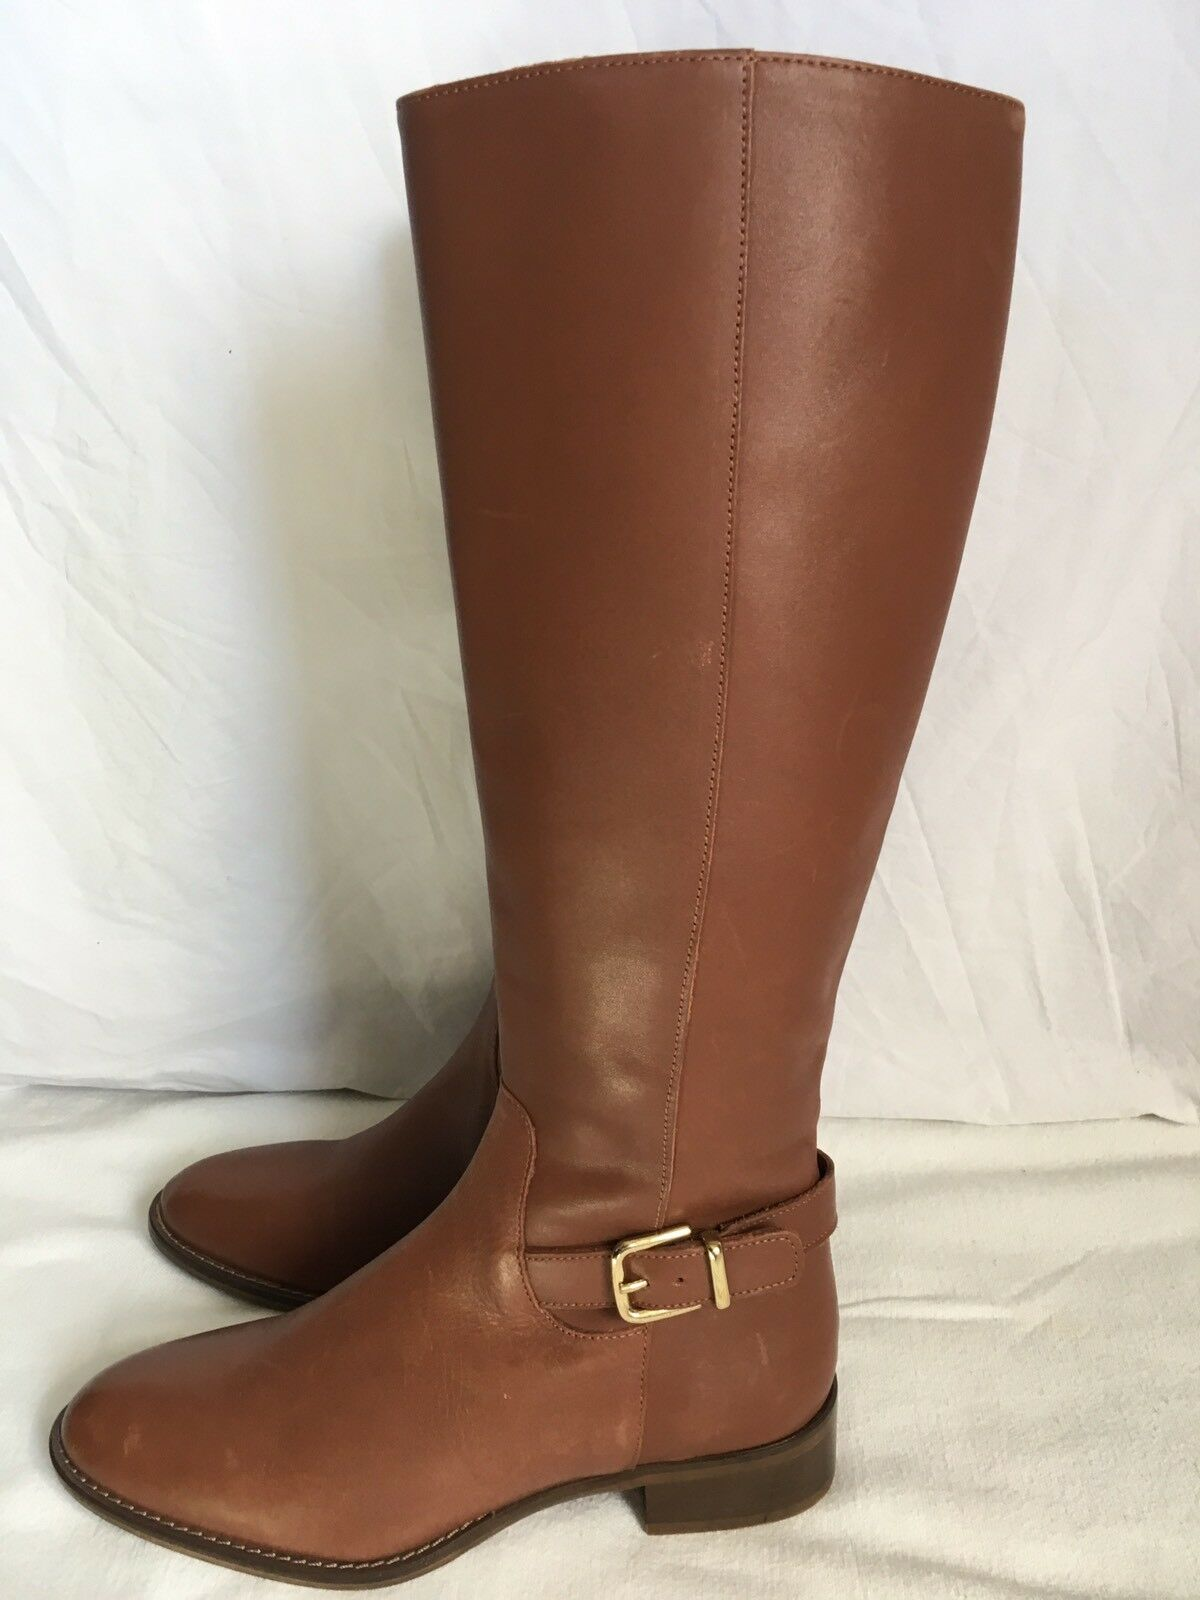 J. Crew Lowell Buckle Mid Calf Leather Boots Kindling Brown size 7.5  348  A9829